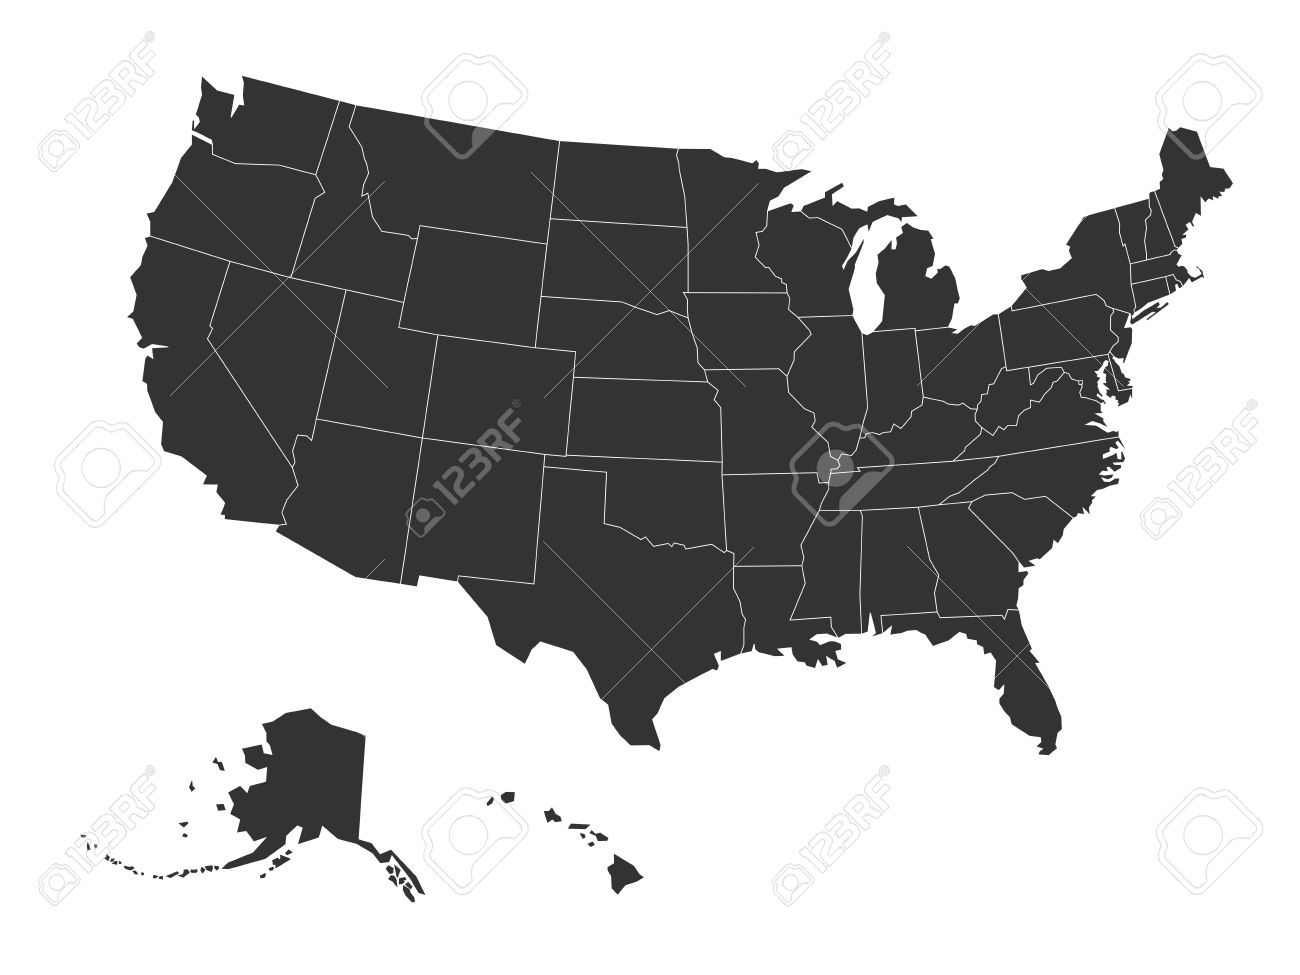 Blank Map Of United States Of America Simplified Dark Grey - Us map white silhouette